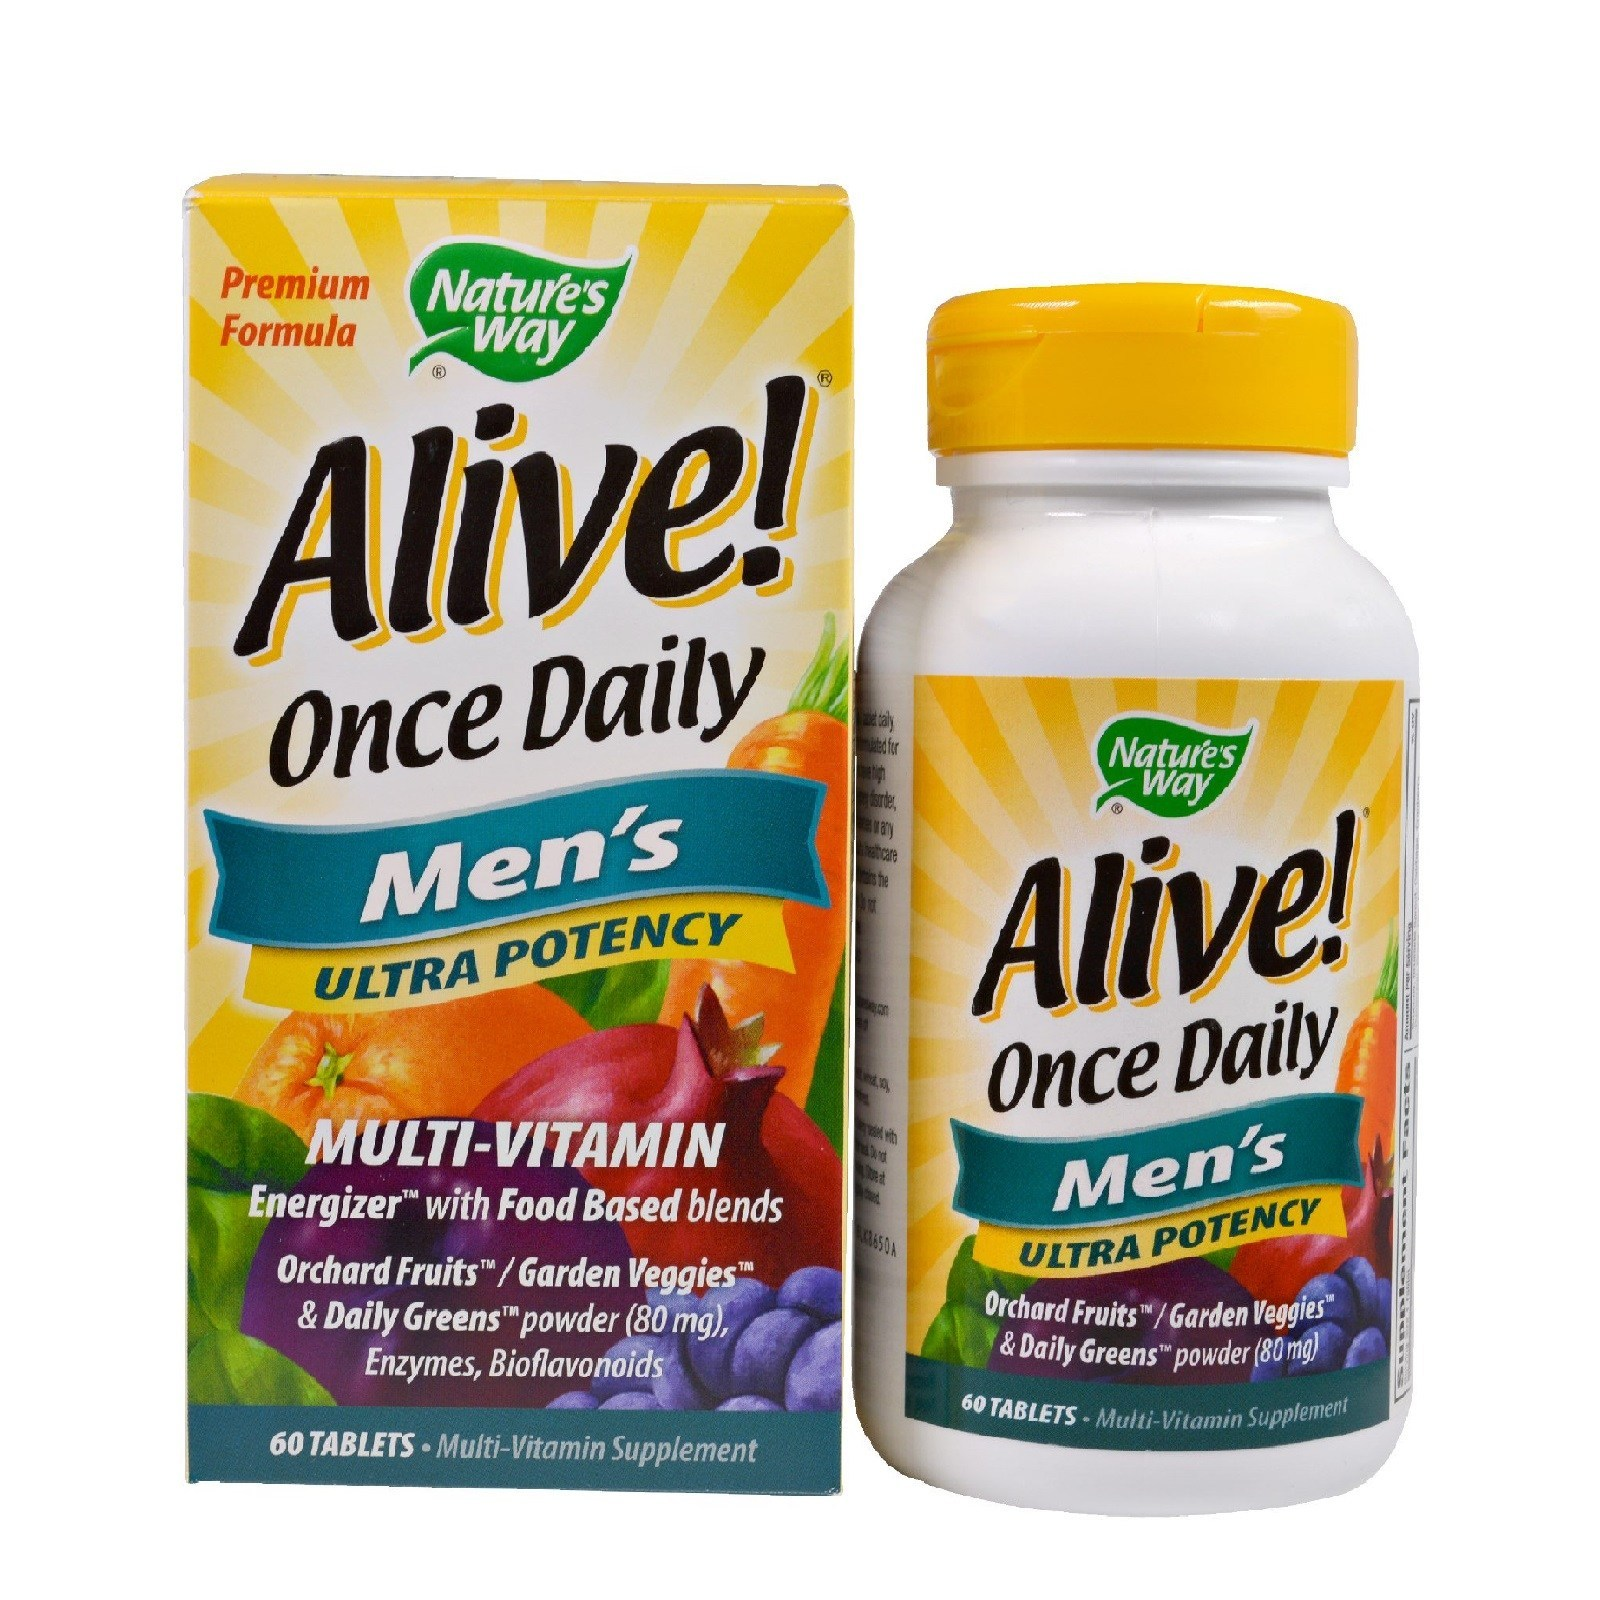 Nature's Way Alive! Once Daily Men's Multivitamin,  Ultra Potency, Food-Based Blends, 60 Tablets – Ultimate Sup